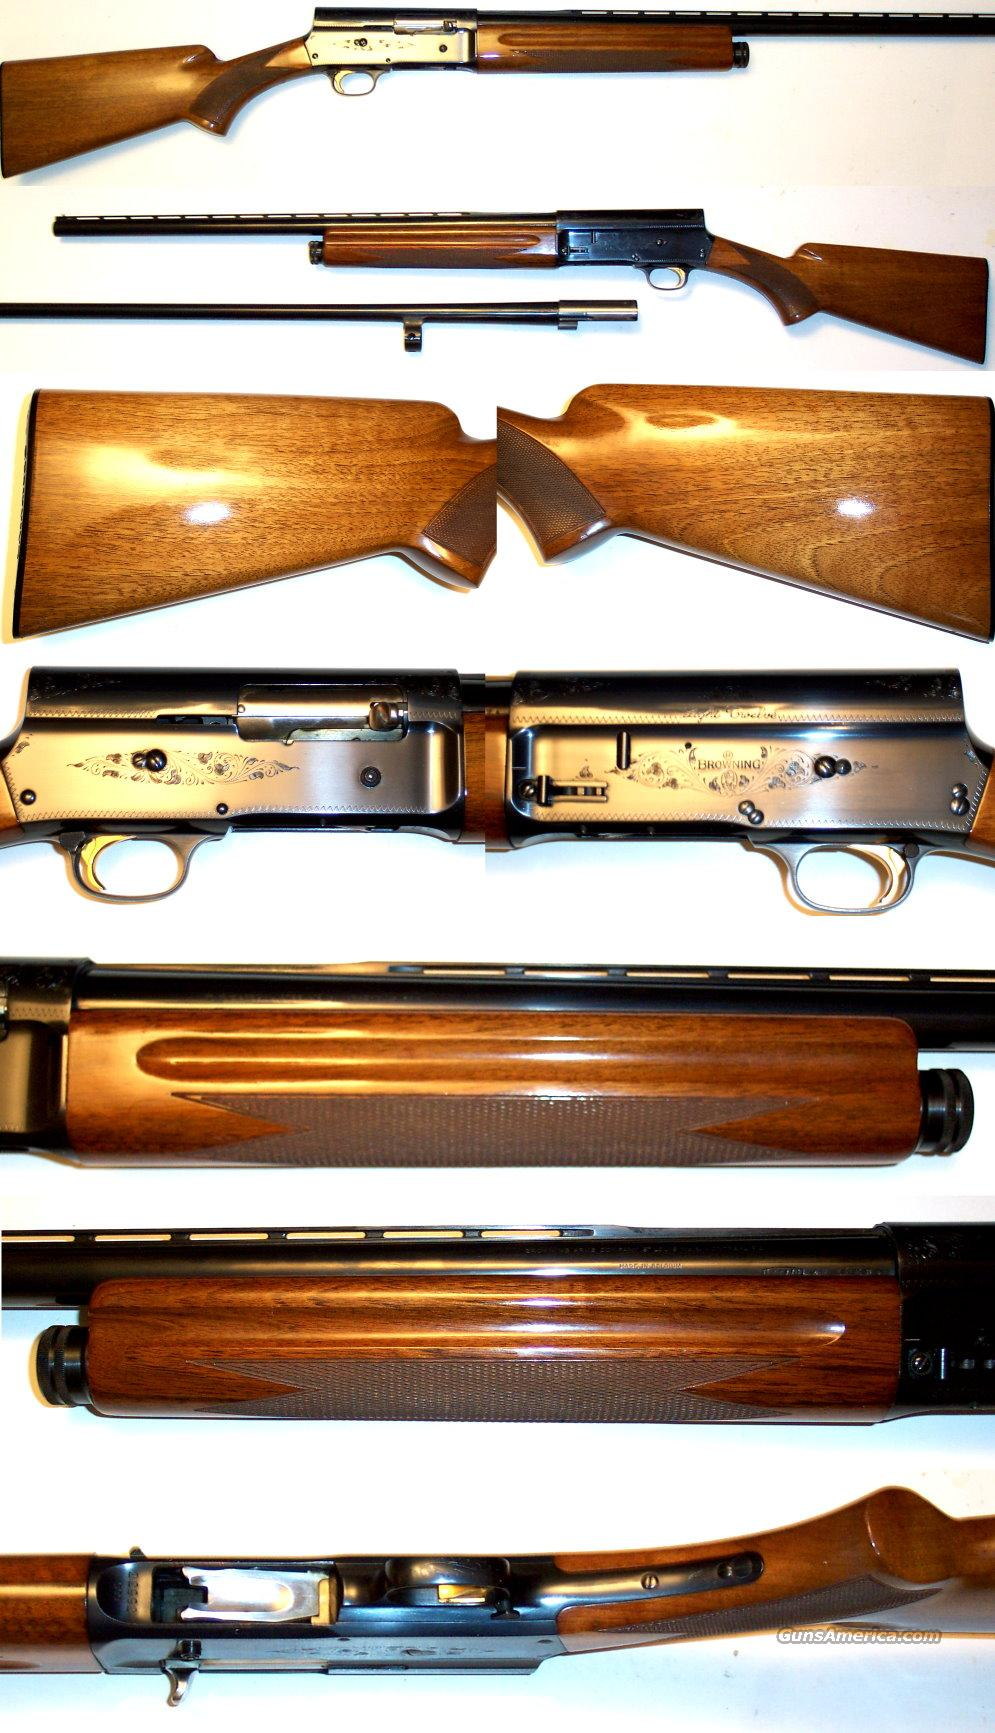 '68 Belgium A5 Light 12 with 2 barrels. Near new condition  Guns > Shotguns > Browning Shotguns > Autoloaders > Hunting